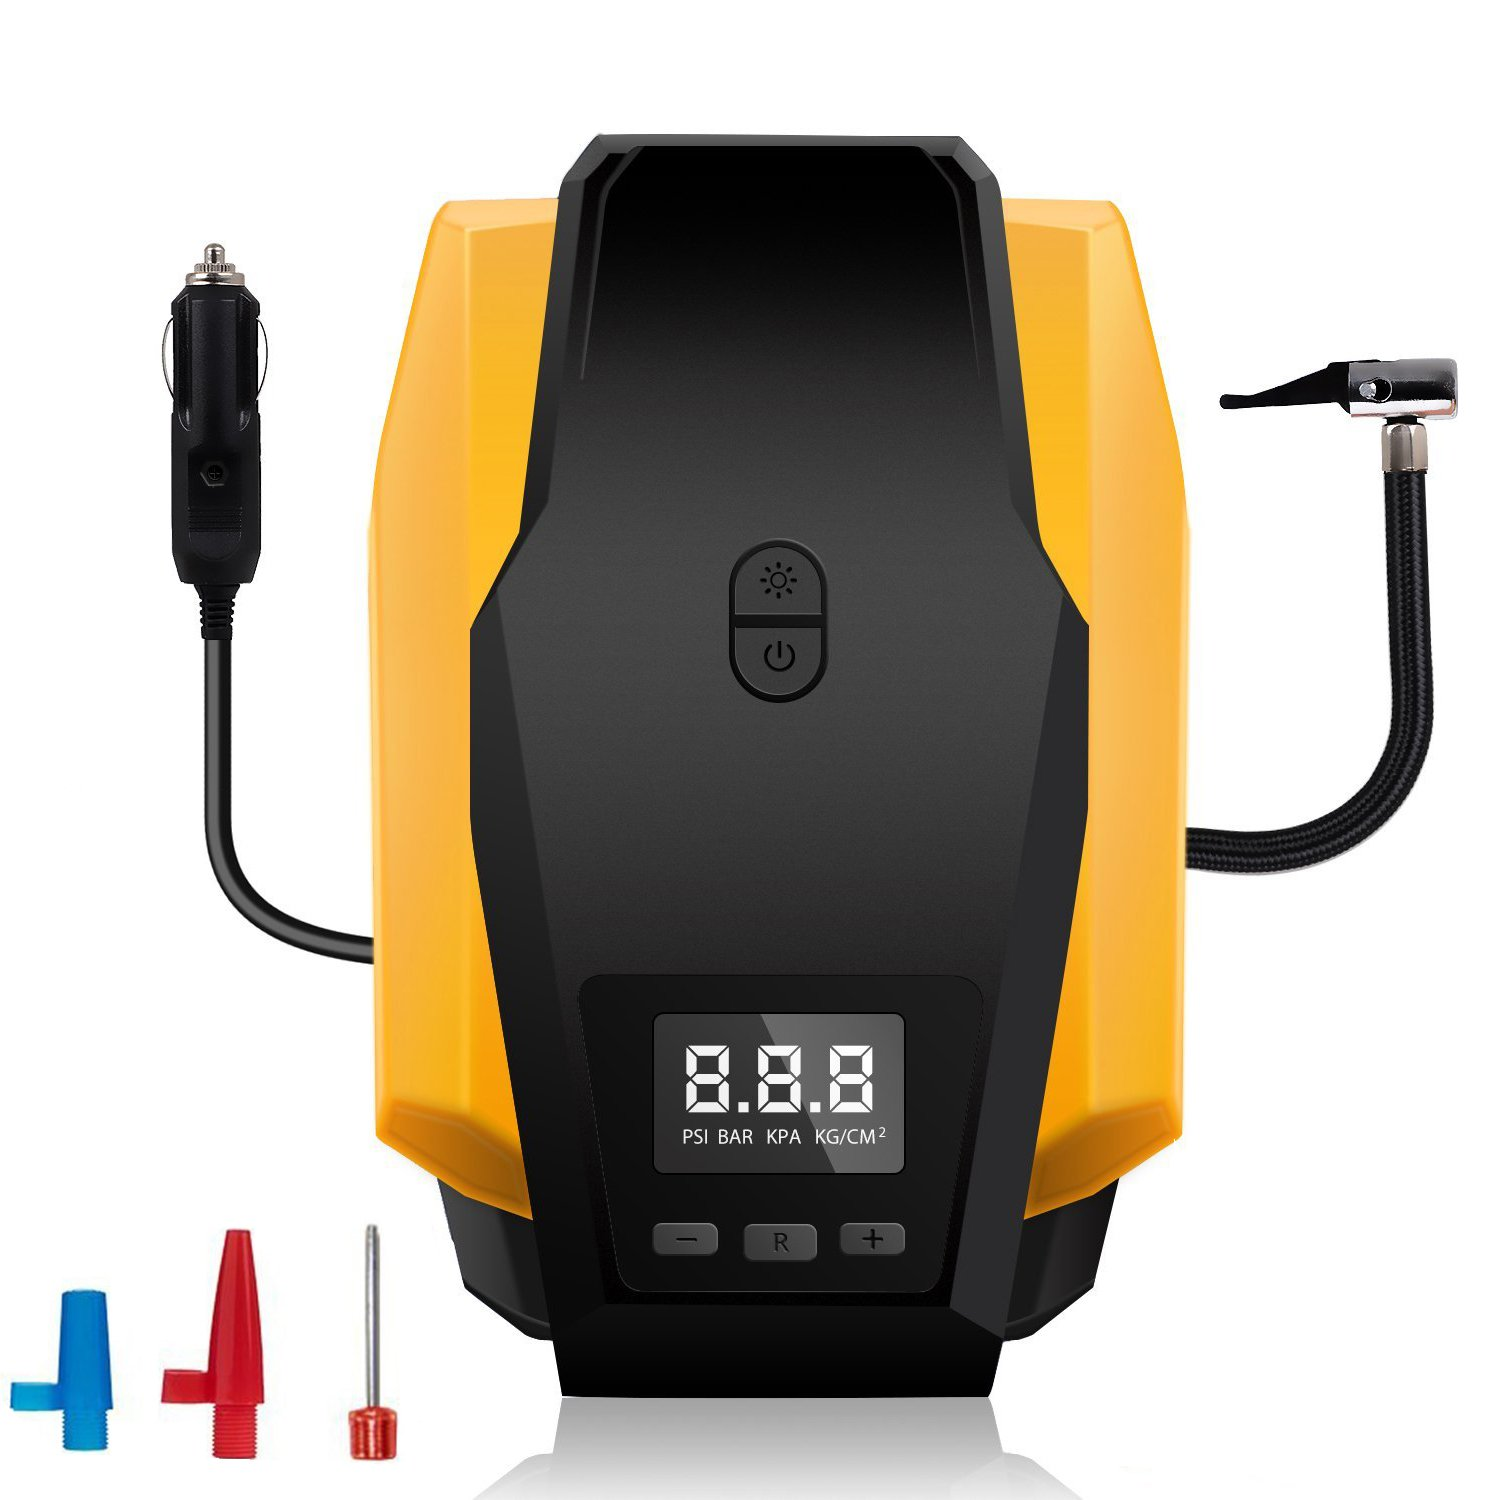 Portable Car Air Compressor Pump,12V 150 PSI Auto Digital Electric Tire Inflator with Gauge Portable Air Compressor Pump for Car, Truck, SUV, Basketballs and Other Inflatables